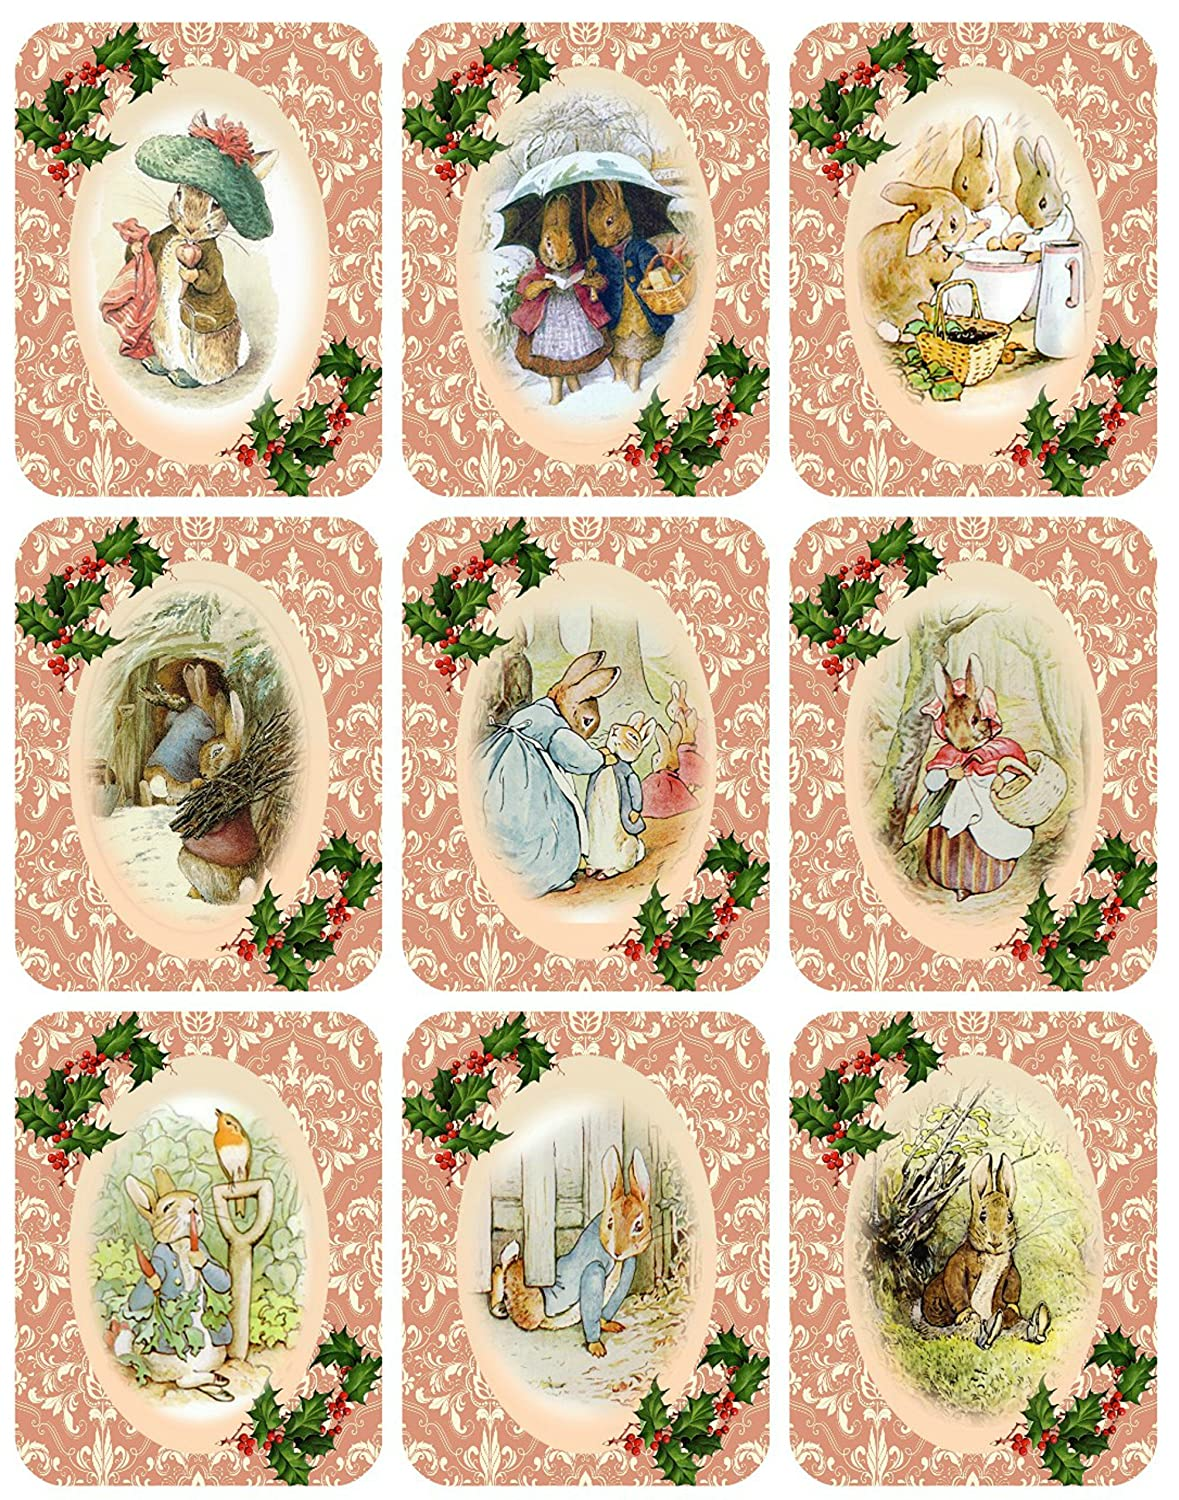 Prints Digital Scrapbooking Peter Rabbit Collection Vintage Victorian Christmas Graphics Collage Sheet ATC Gift Tags 8.5 x 11